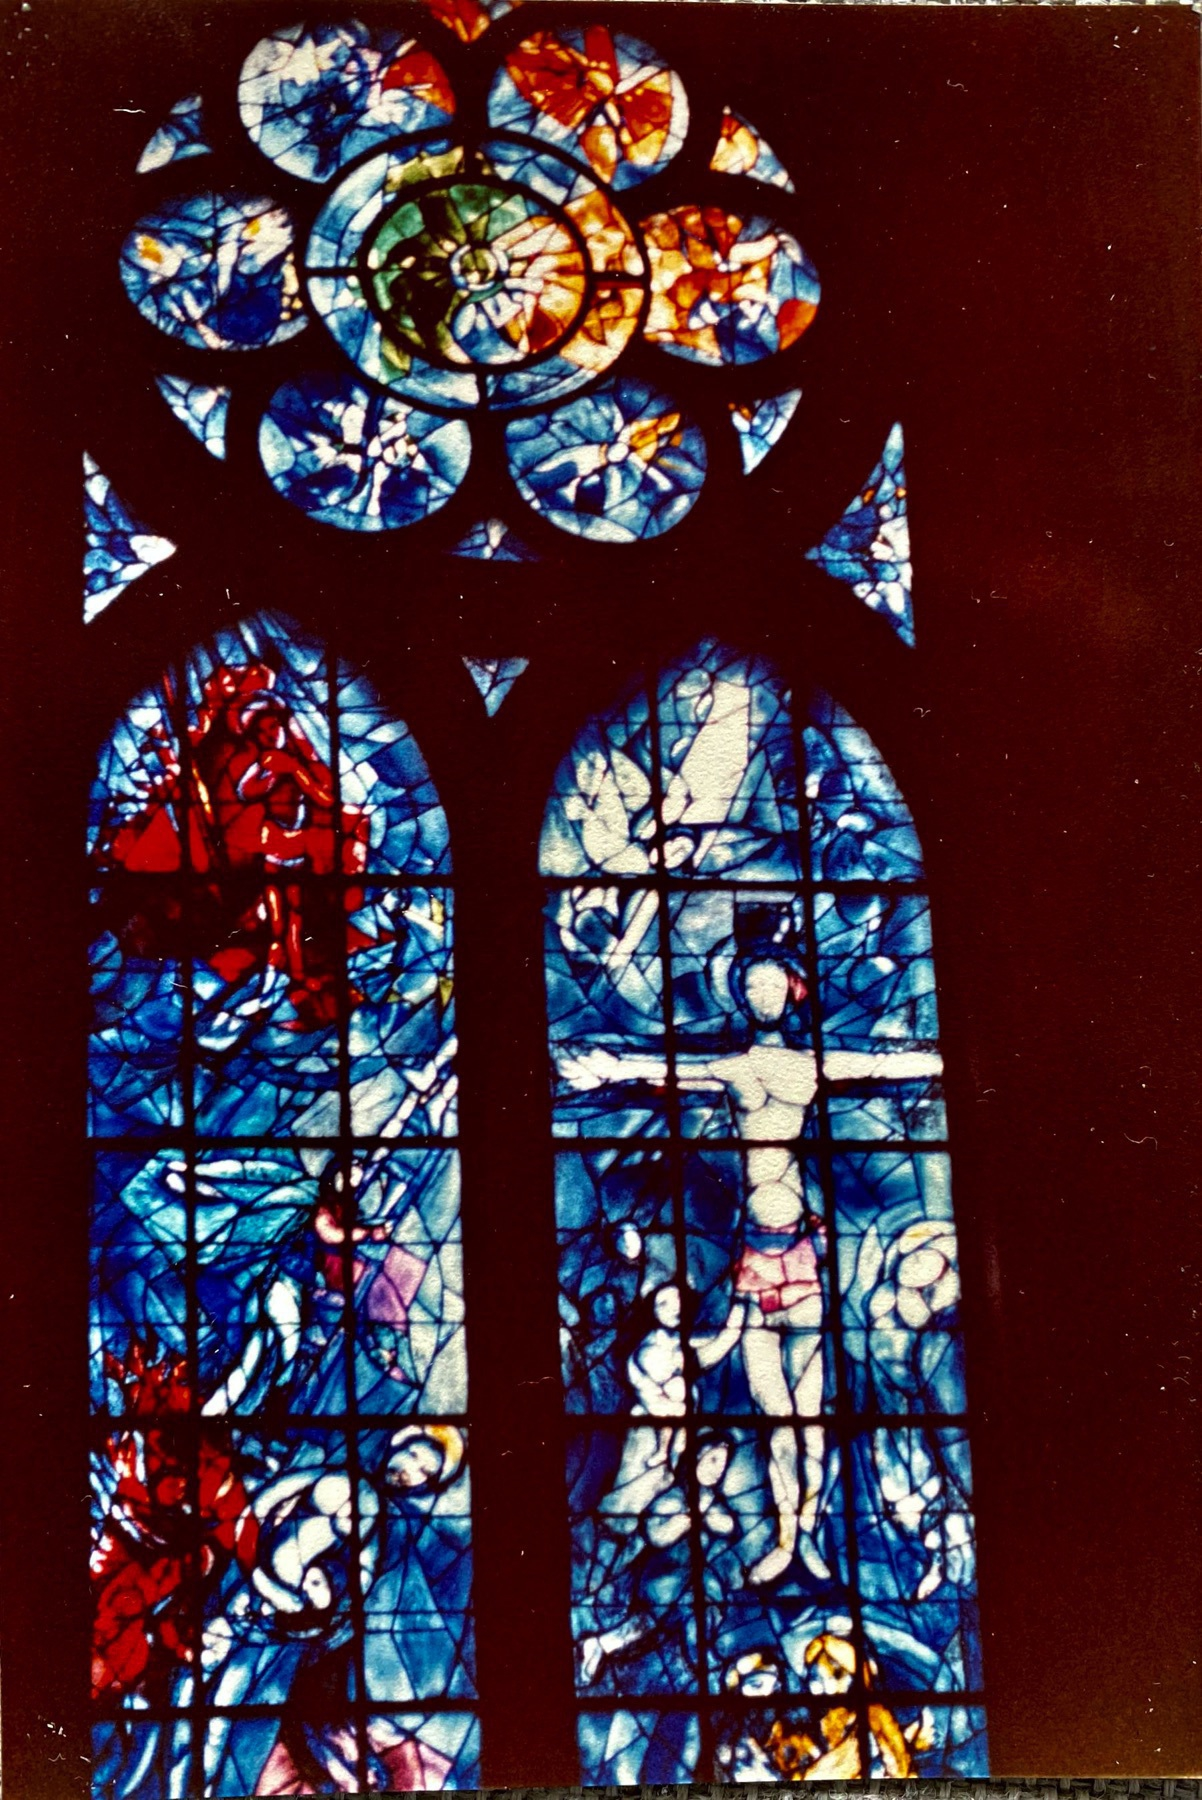 One cathedral window in stained glass with a predominant blue colour.